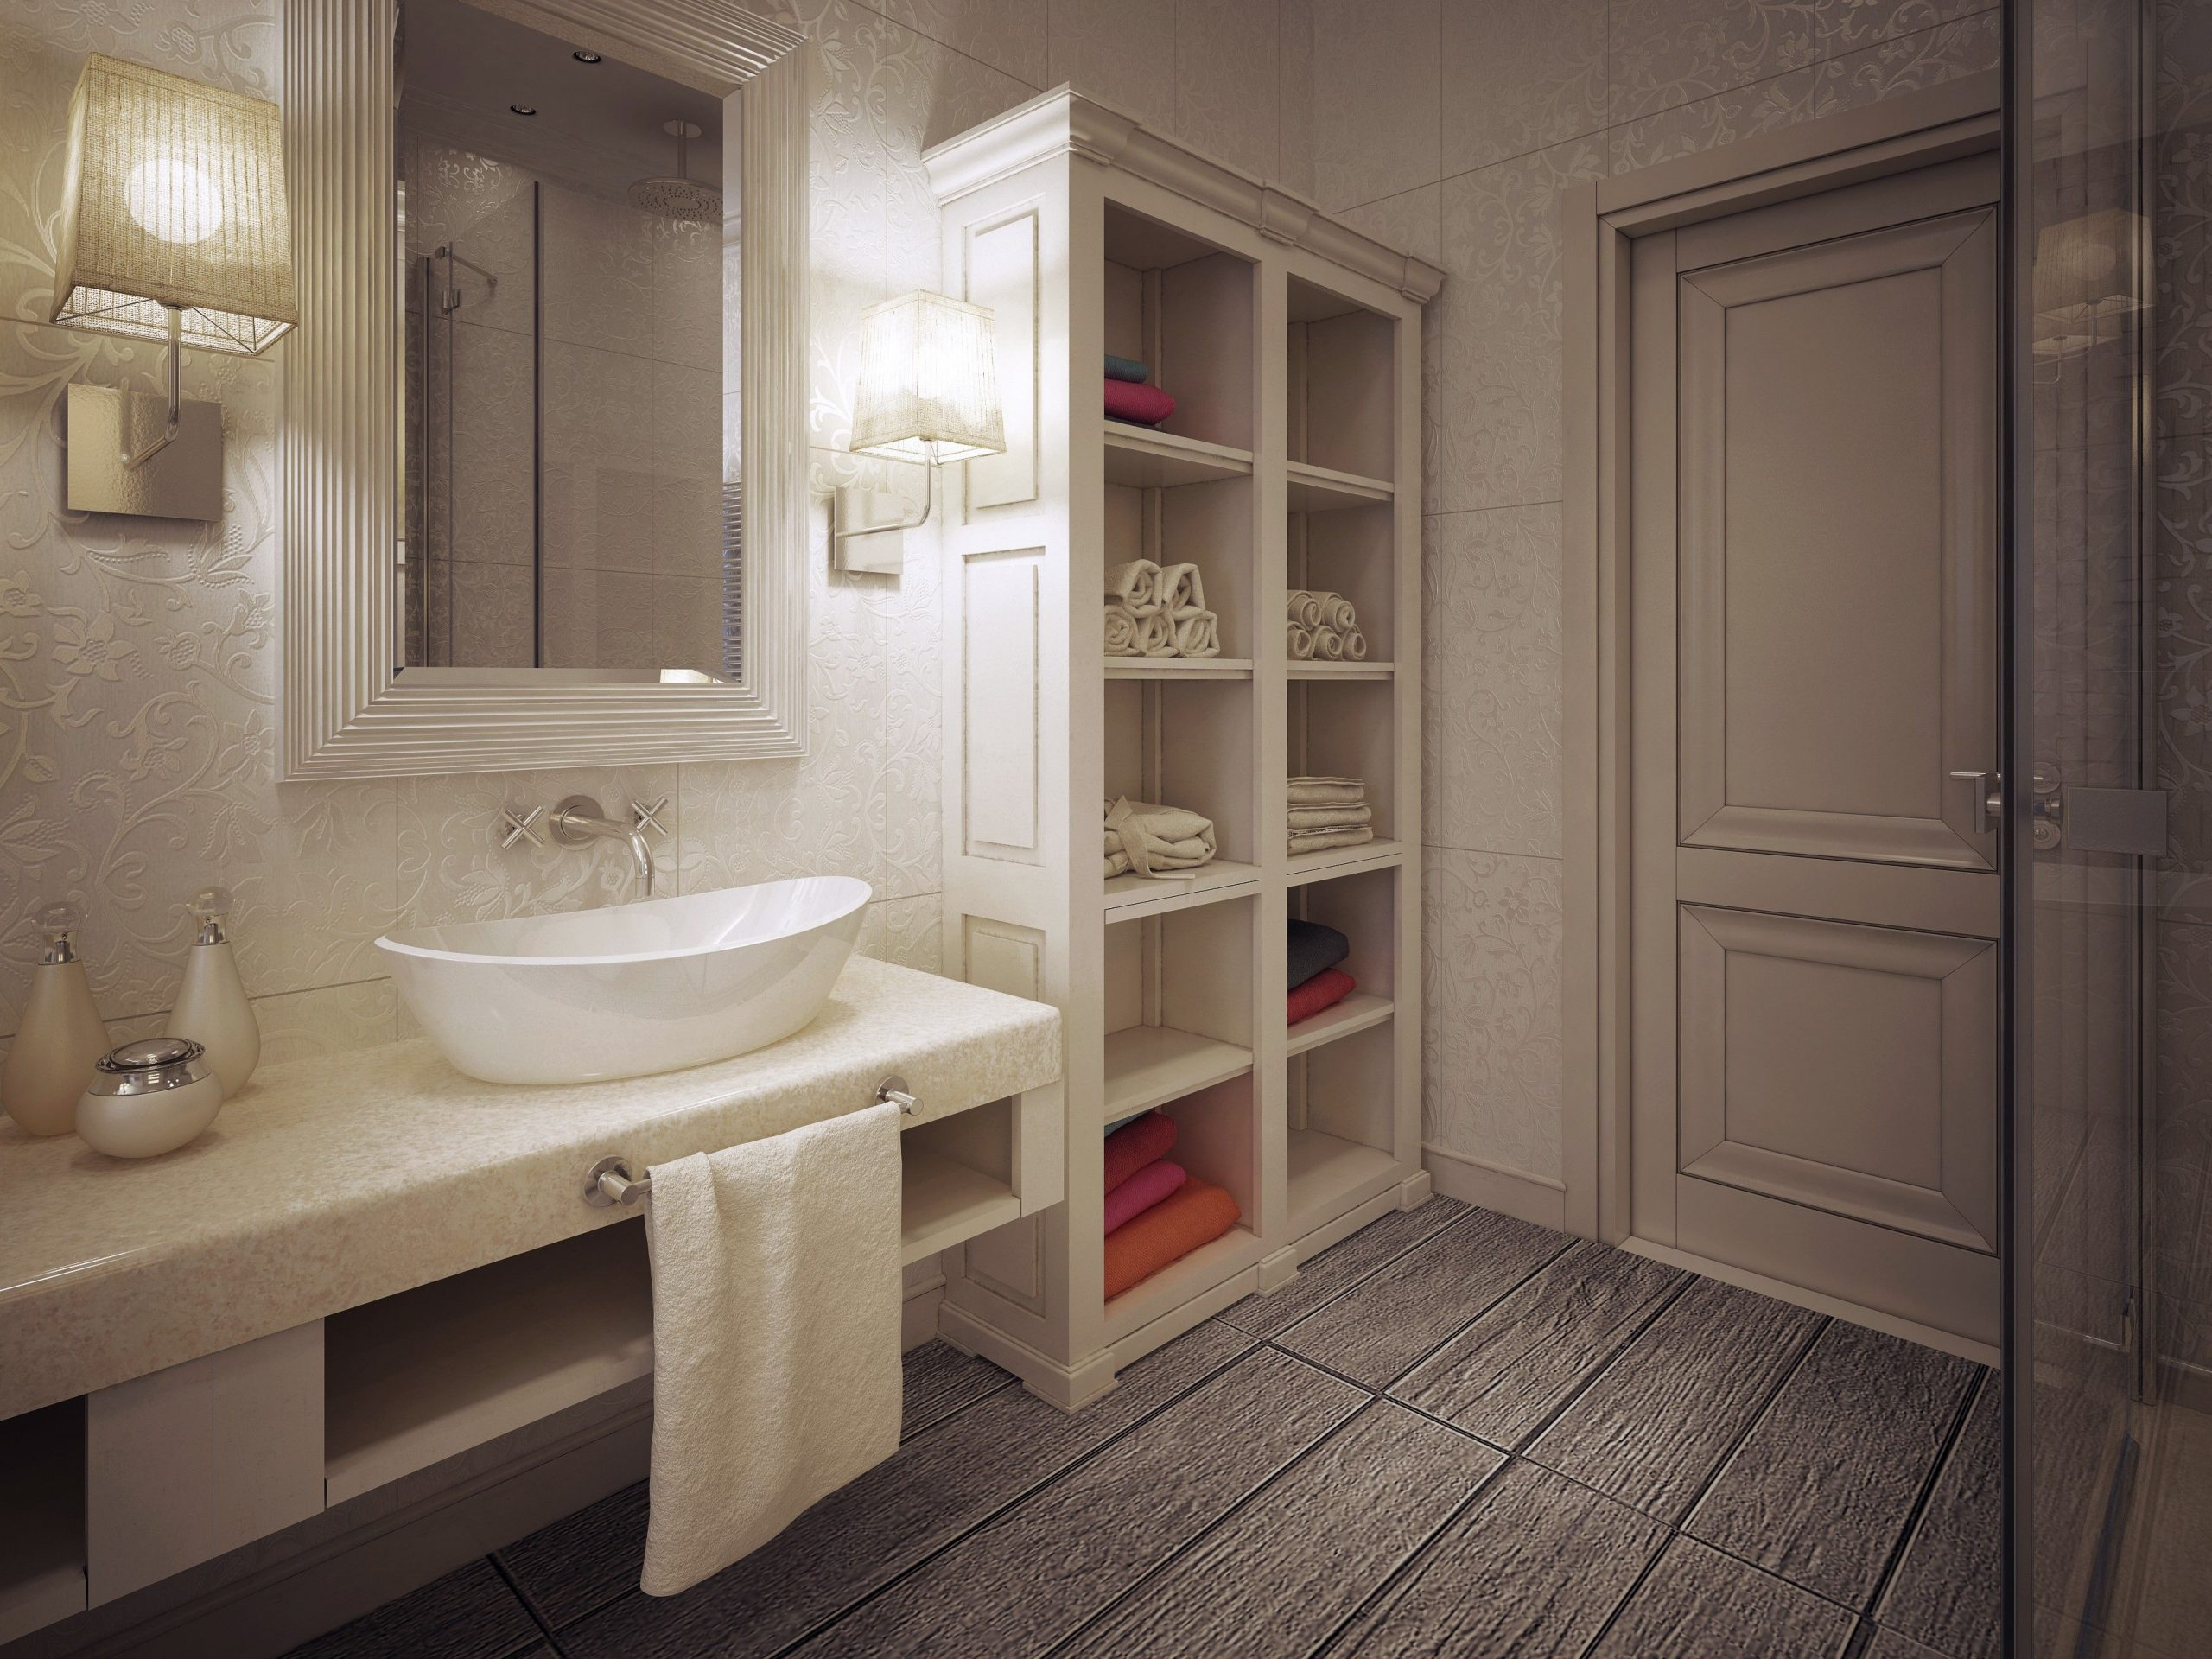 5 things you should know before   remodeling your bathroom